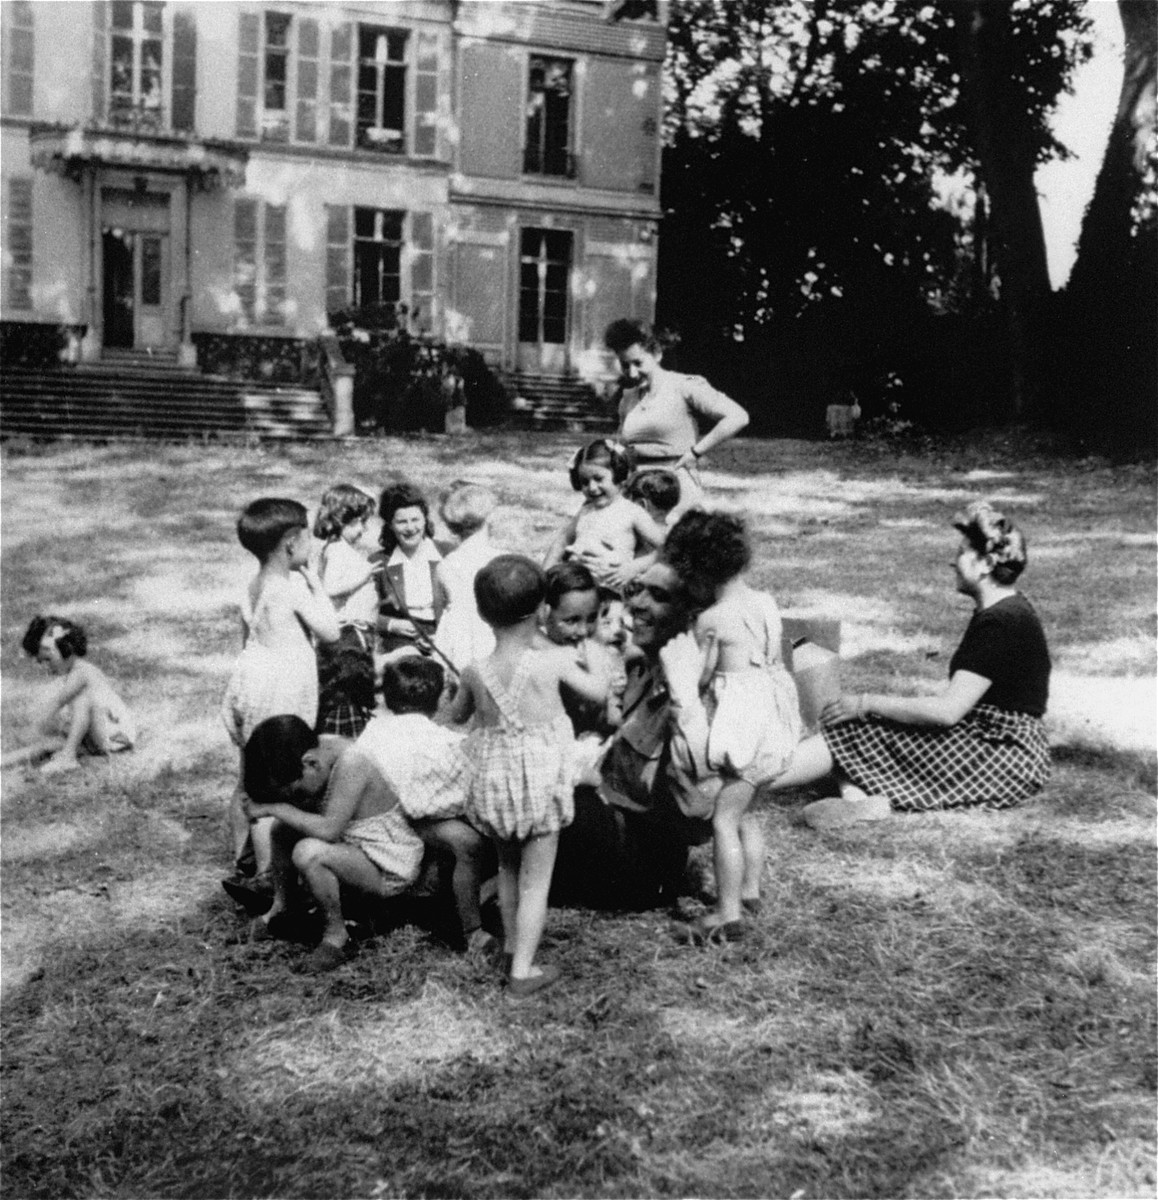 A group of children with whom Hermine Markovitz was working while being trained. She believes it was in Sevres and that Simone Weil may possibly be in this photograph.